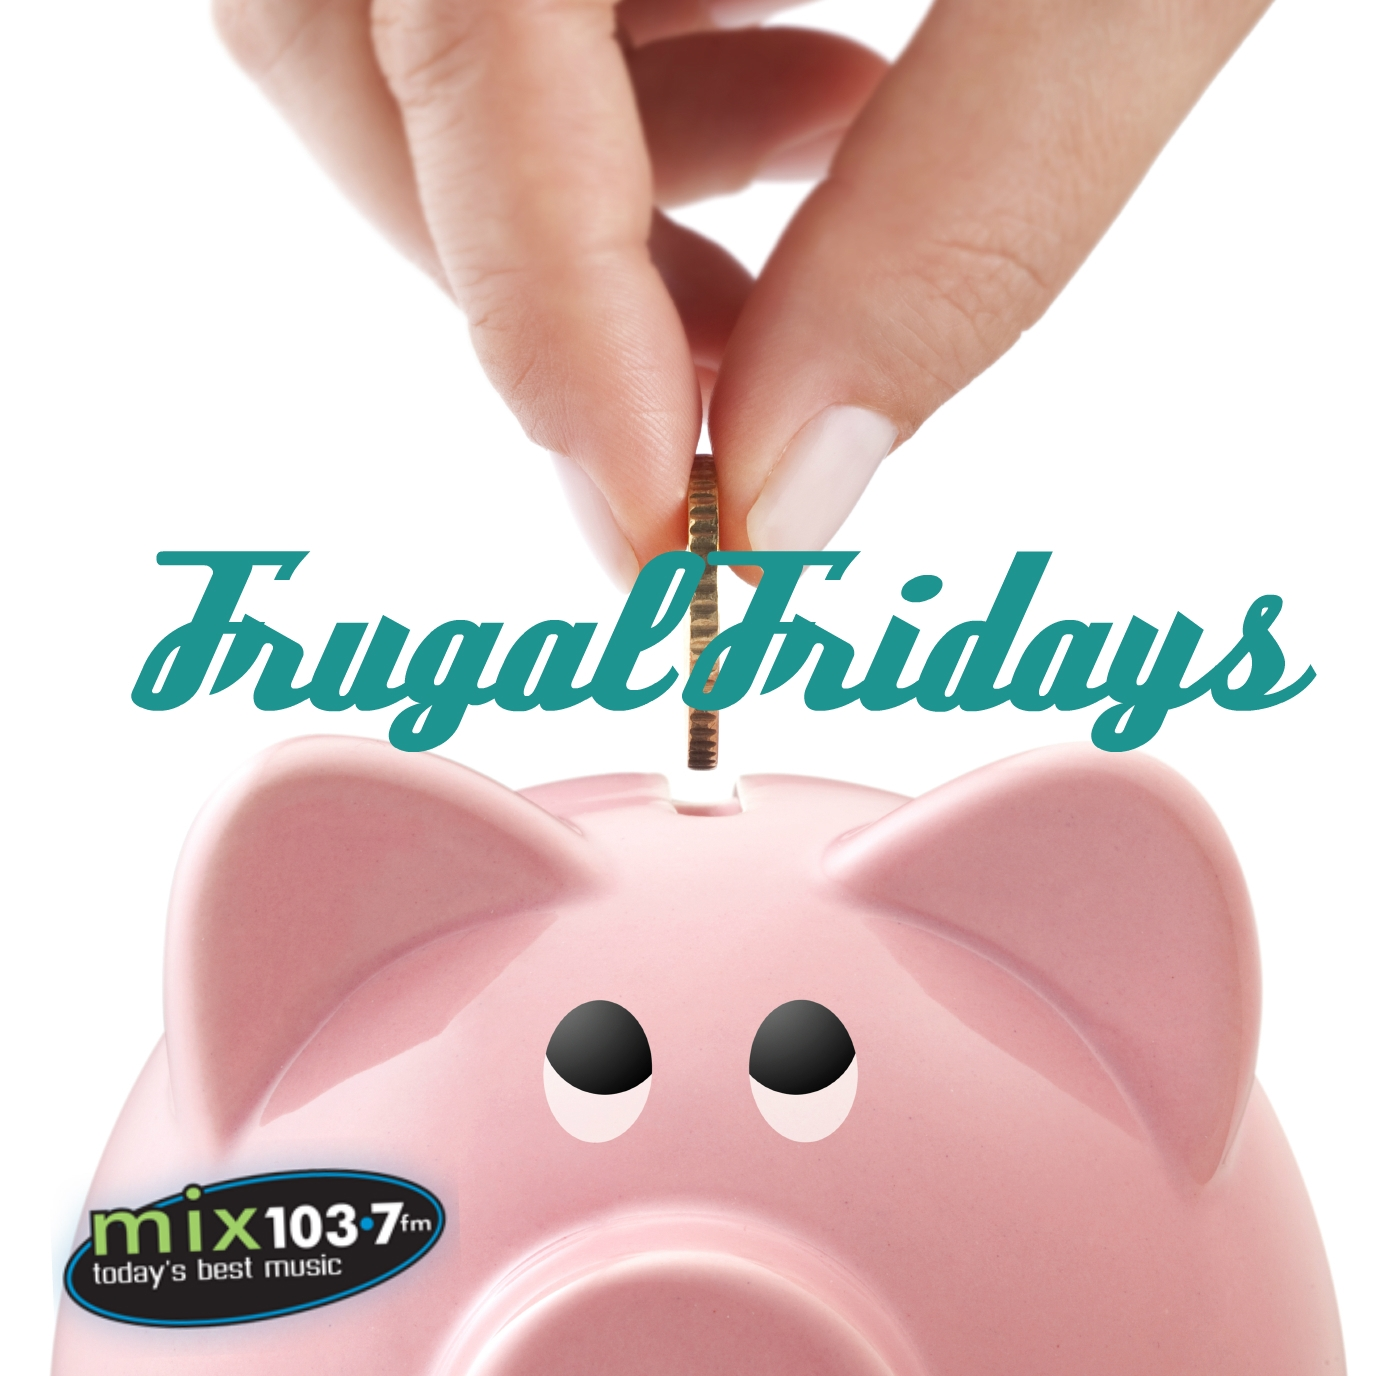 Frugal Friday's - Documentaries galore!